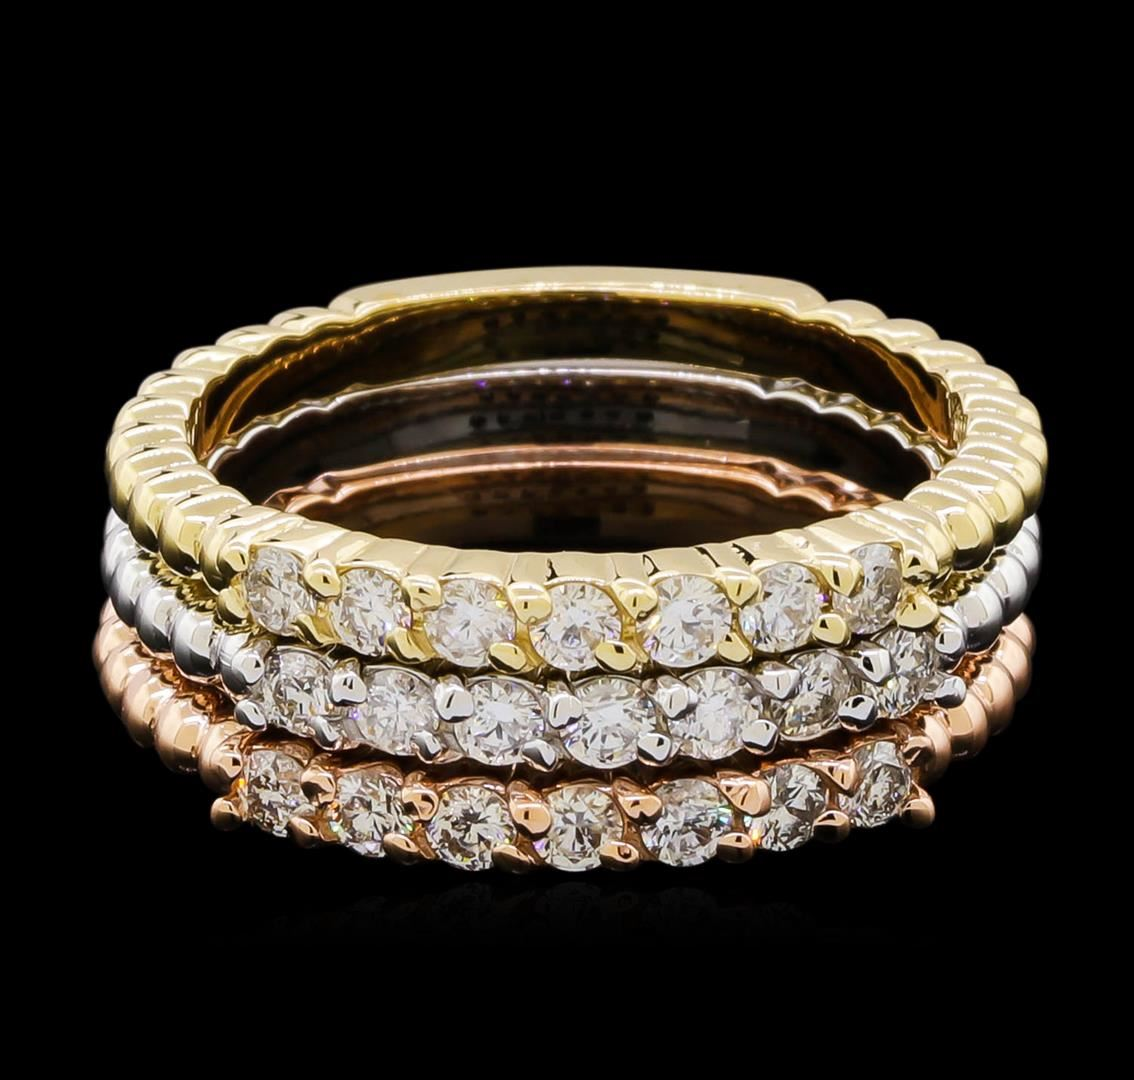 065ctw Diamond Ring Set  14kt Tri Color Gold. Roman Numeral Bracelet. Where To Buy Mens Wedding Band. 1 Carat Eternity Band. Yellow Sapphire Gemstone. Gold Diamond Watches. French Engagement Rings. Simple Gold Jewellery. Beaded Bangle Bracelet